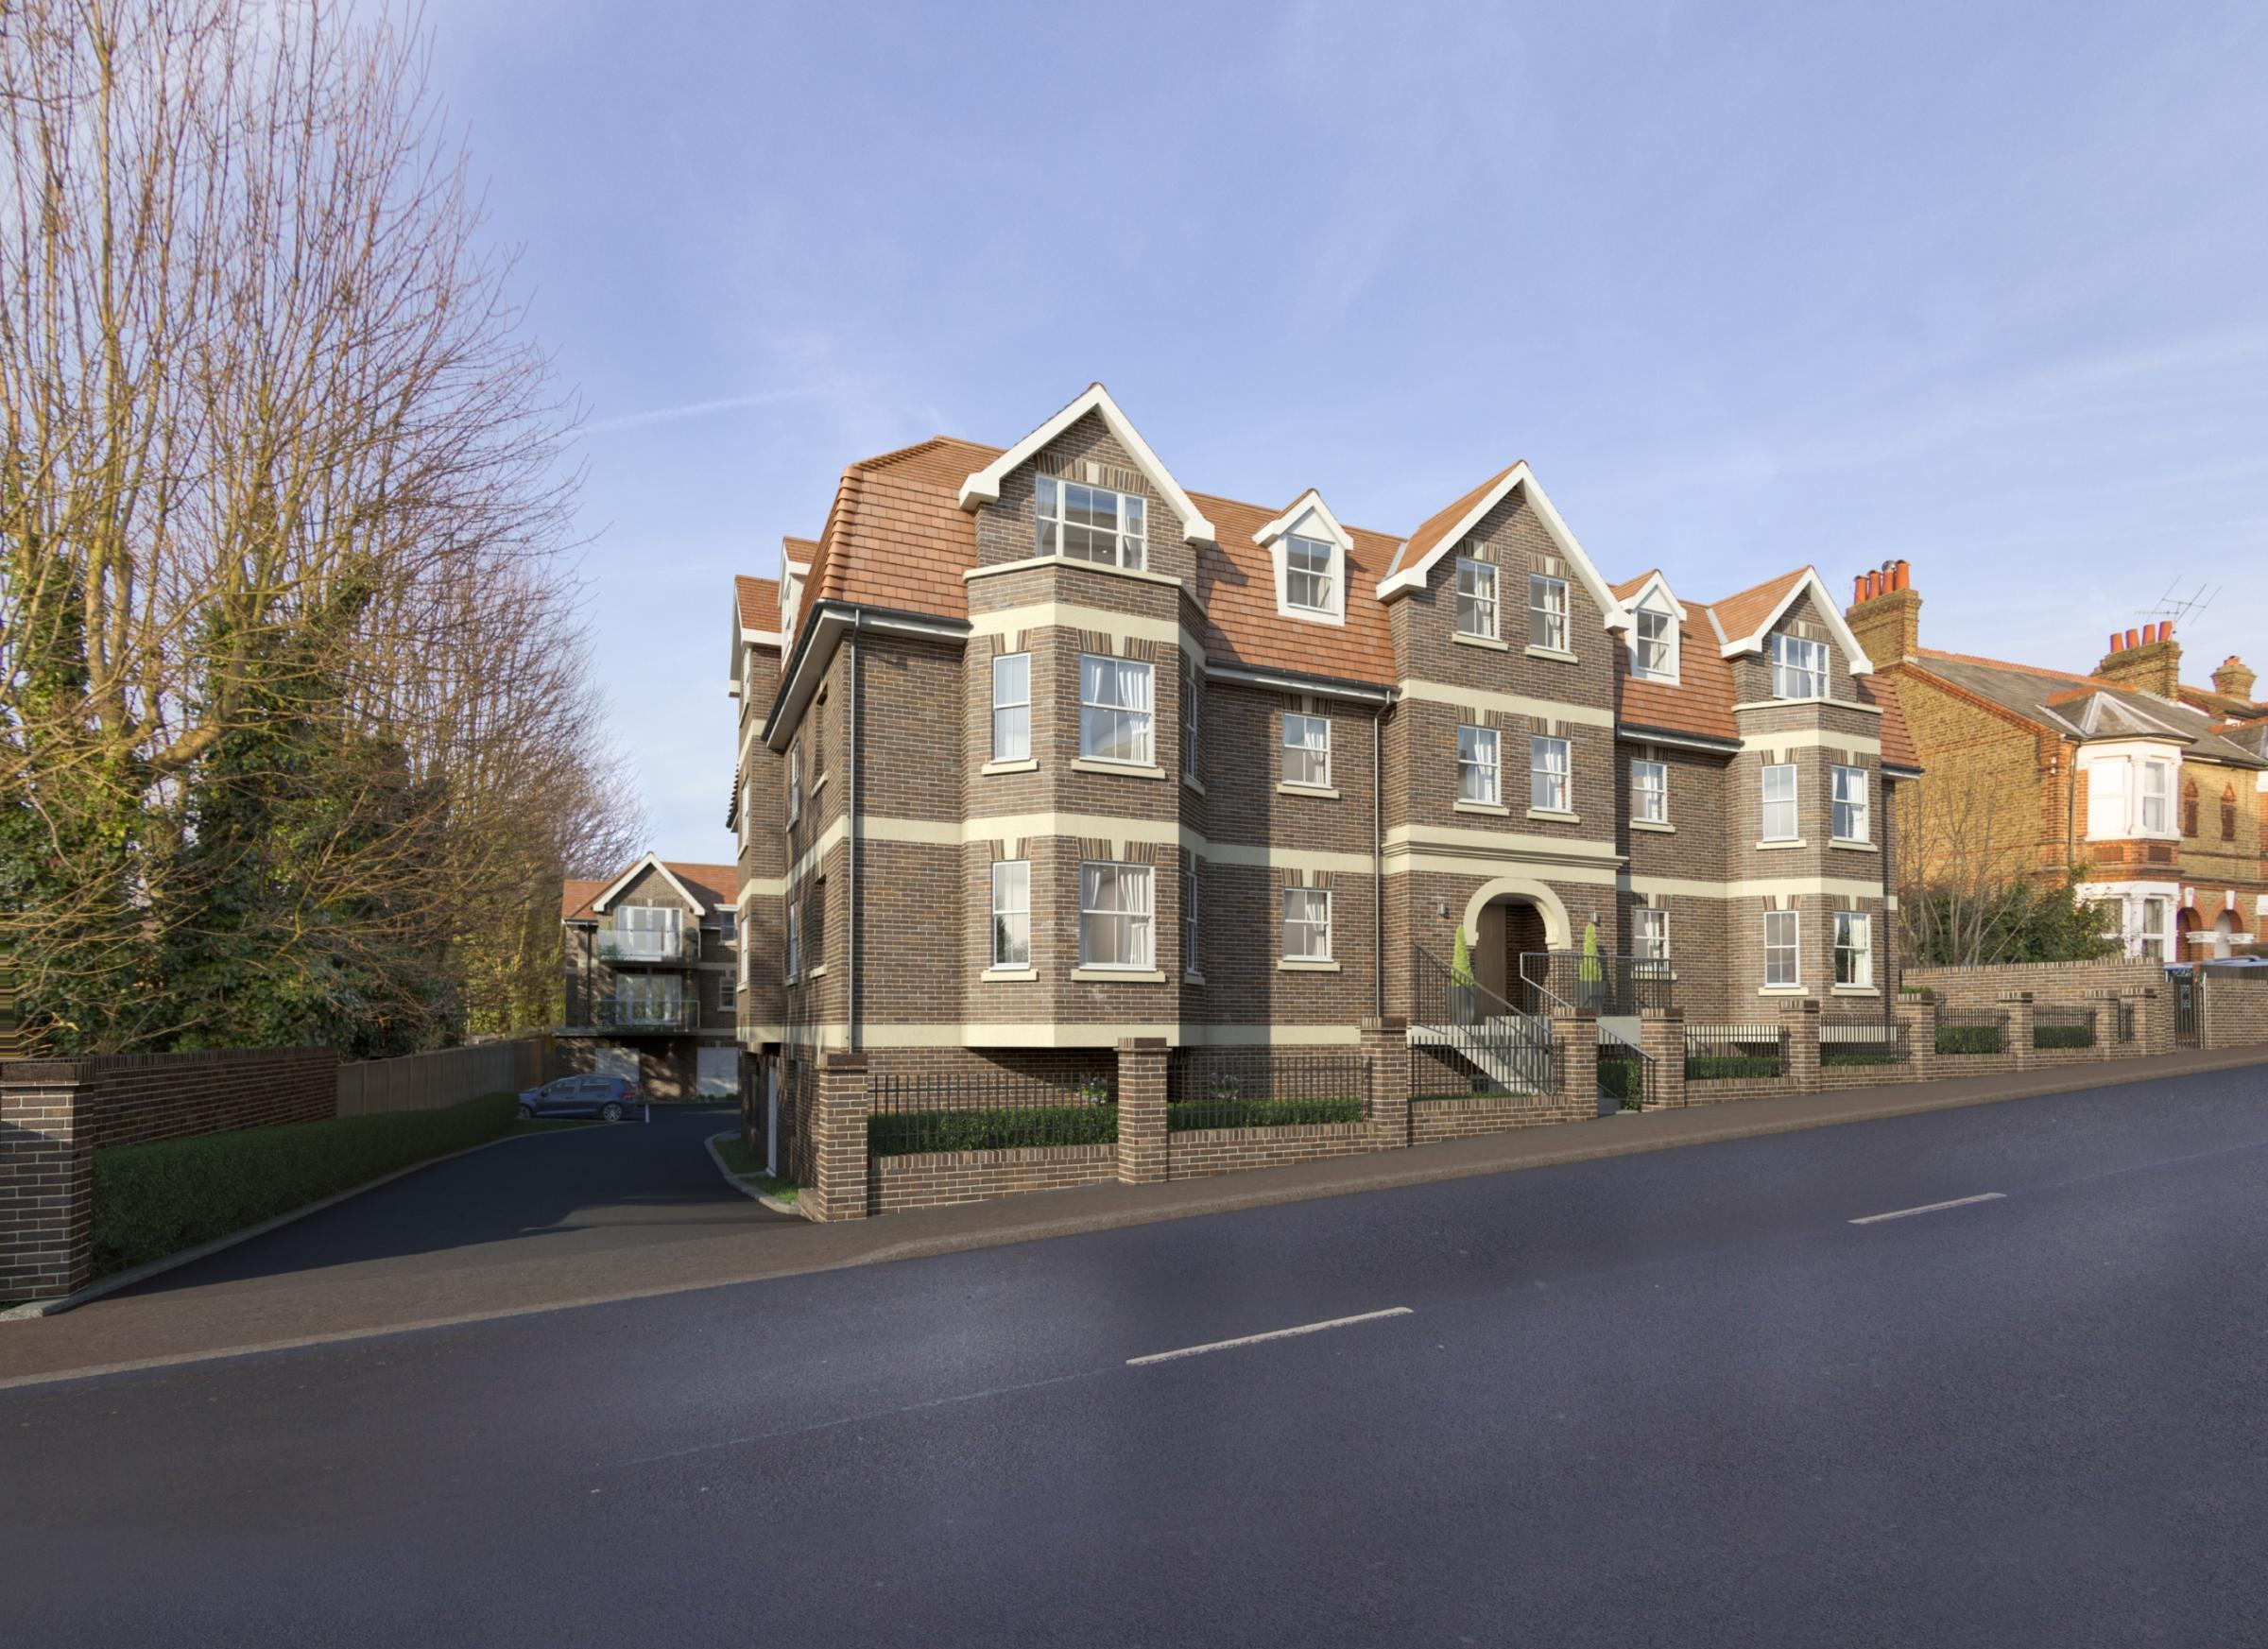 LUXURY NEW HOMES LAUNCH FOR SALE IN BUSHEY HERTFORDSHIRE